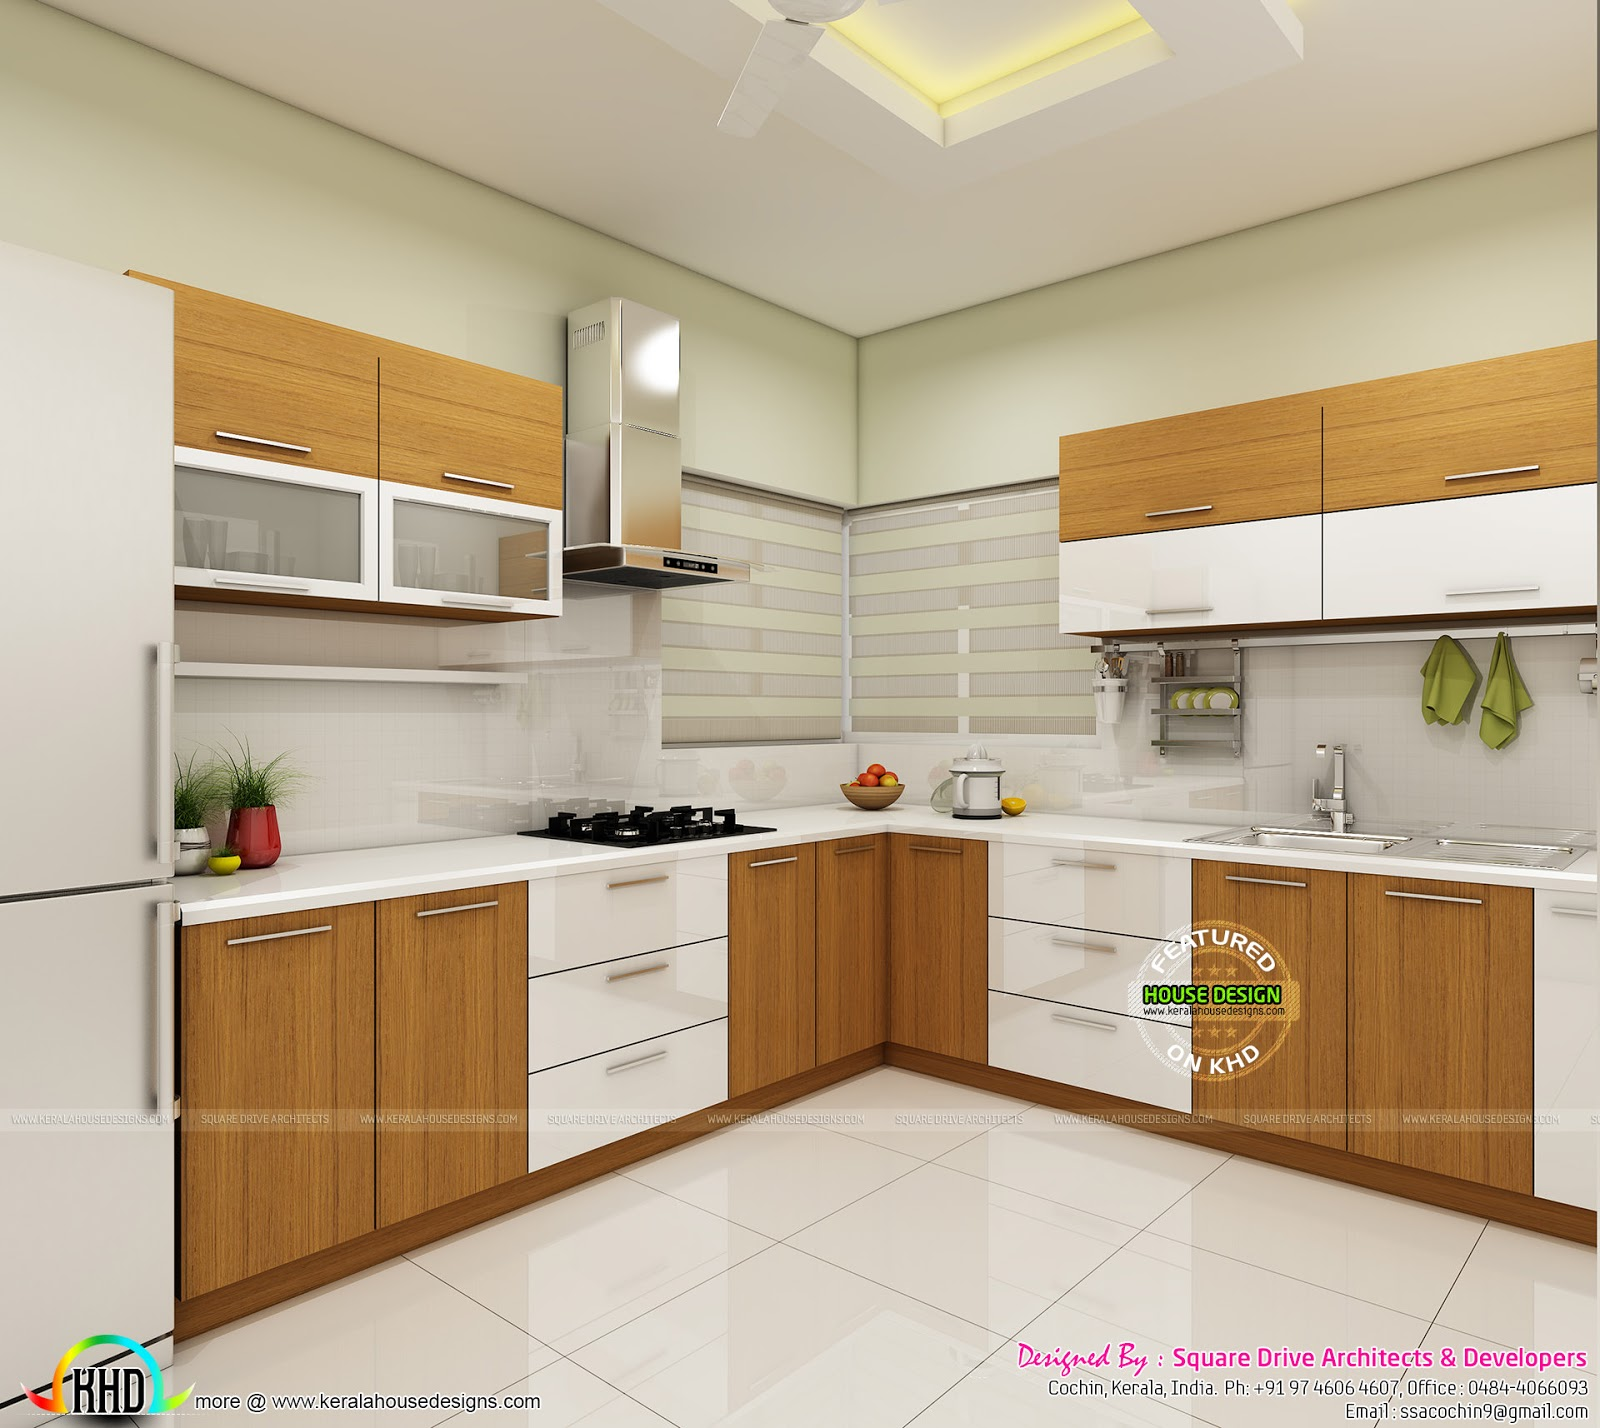 Interior Design Kitchen: Modern Home Interiors Of Bedroom, Dining, Kitchen